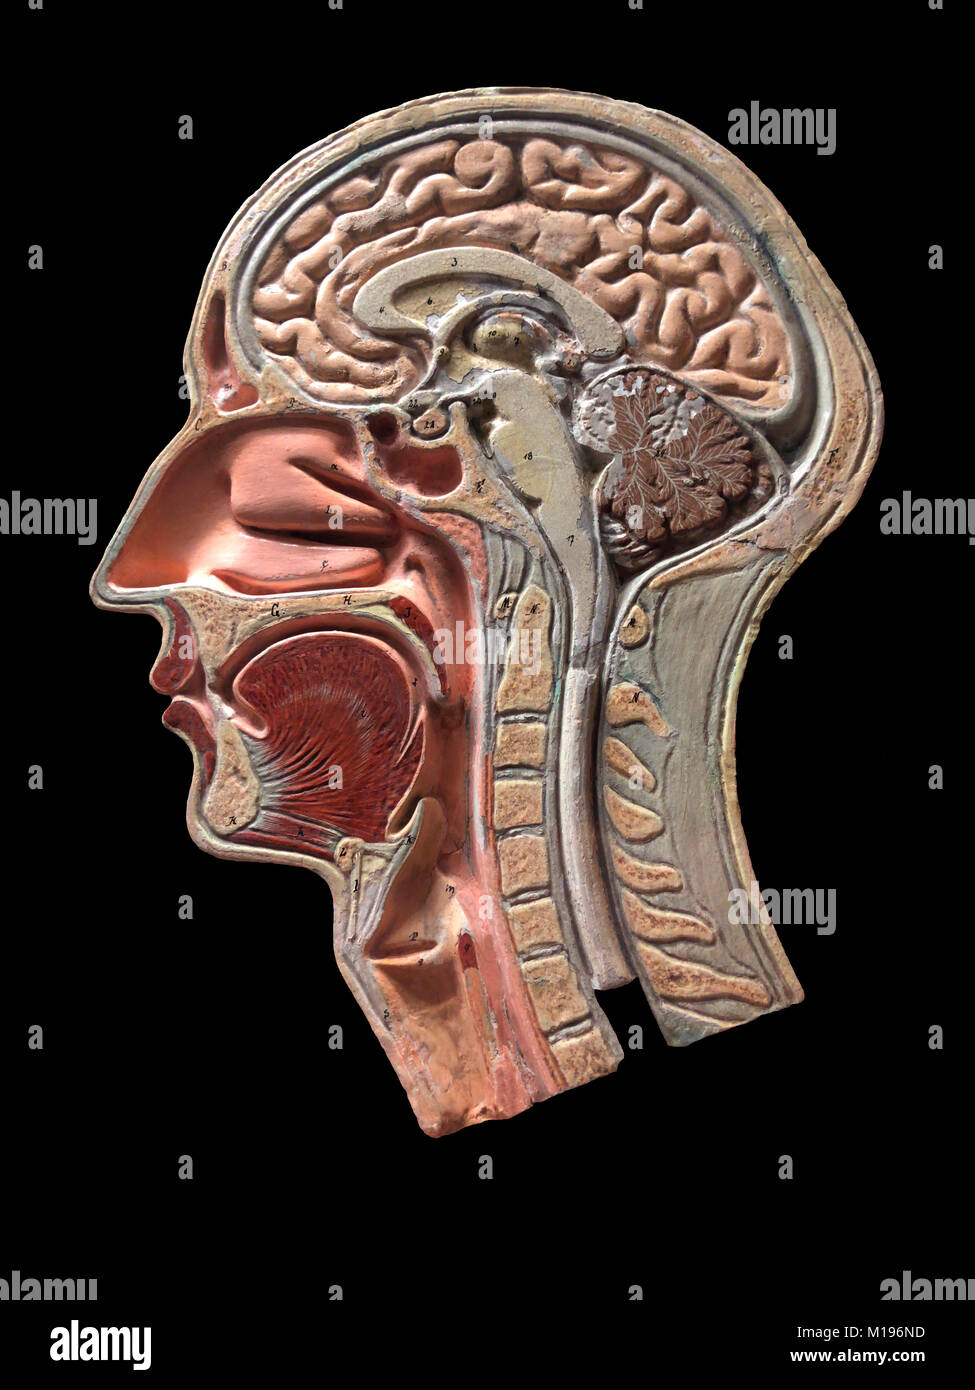 A vintage anatomy model of the human head. This handmade plaster cross section dates from circa 1860. - Stock Image